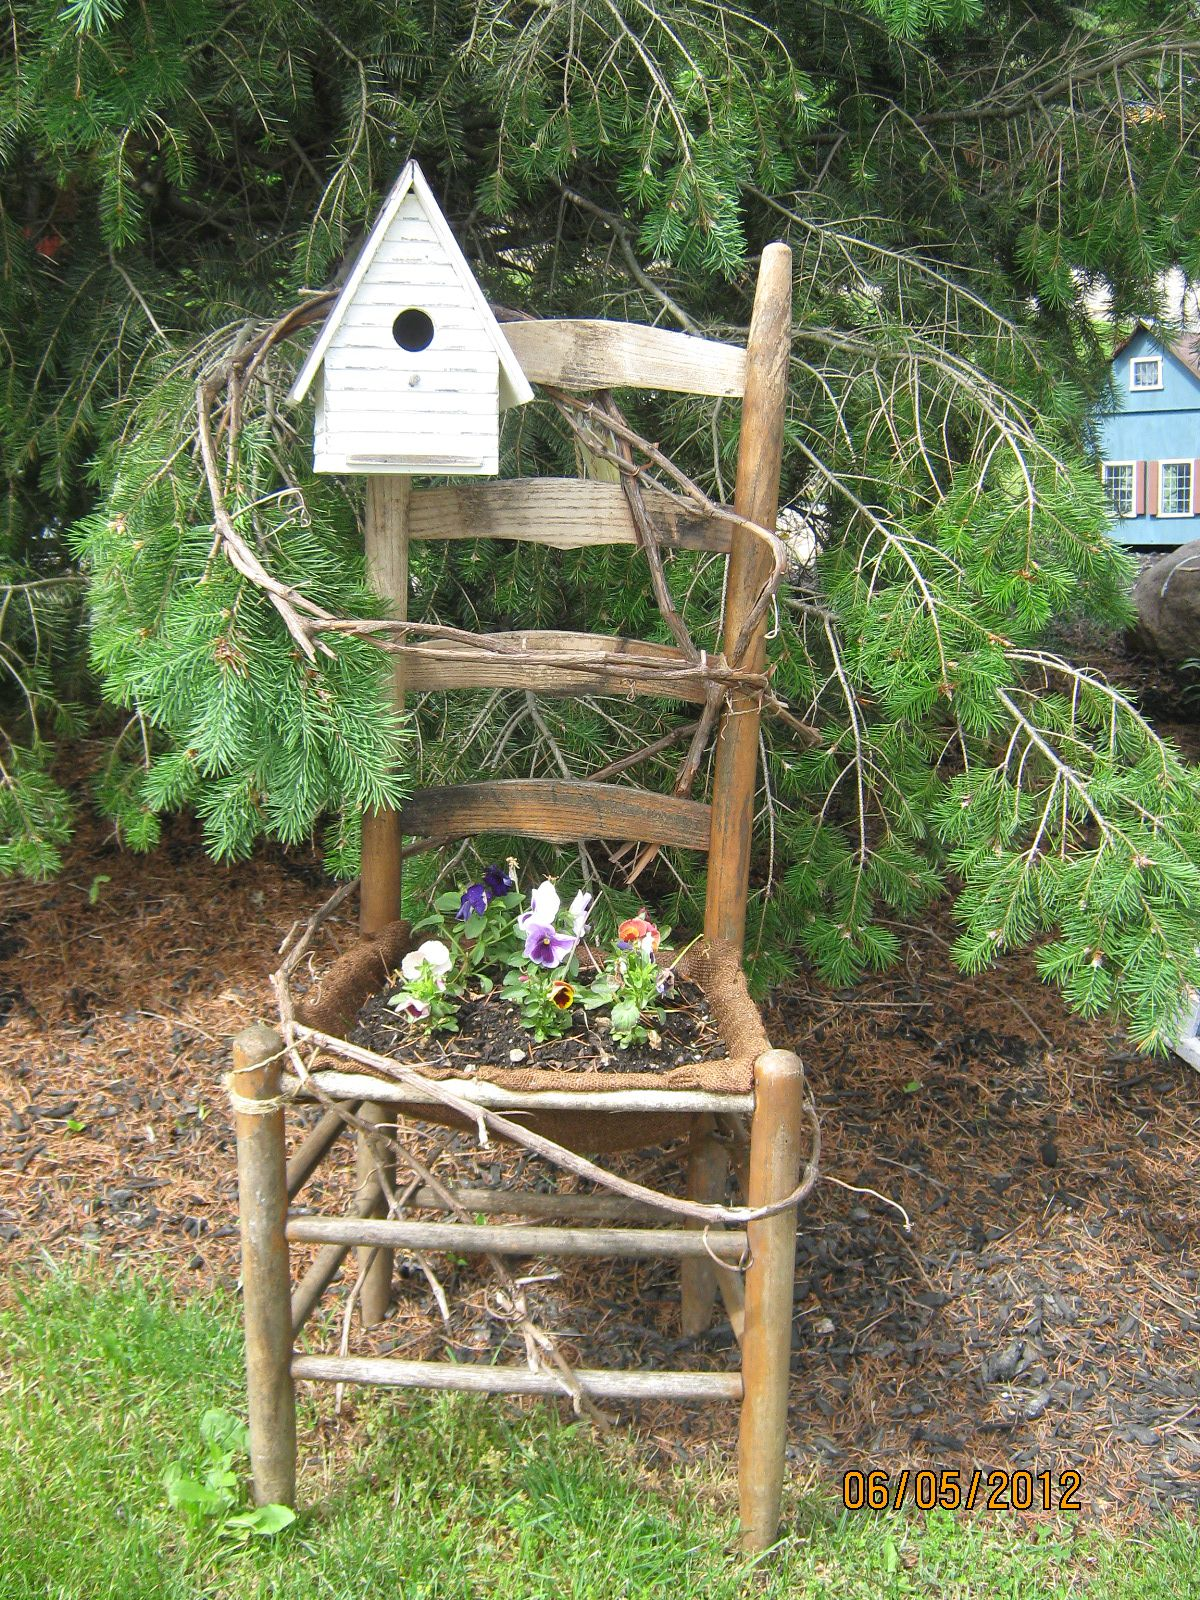 Art For The Garden: Save An Old Chair For A Repurposed Planter In The Garden